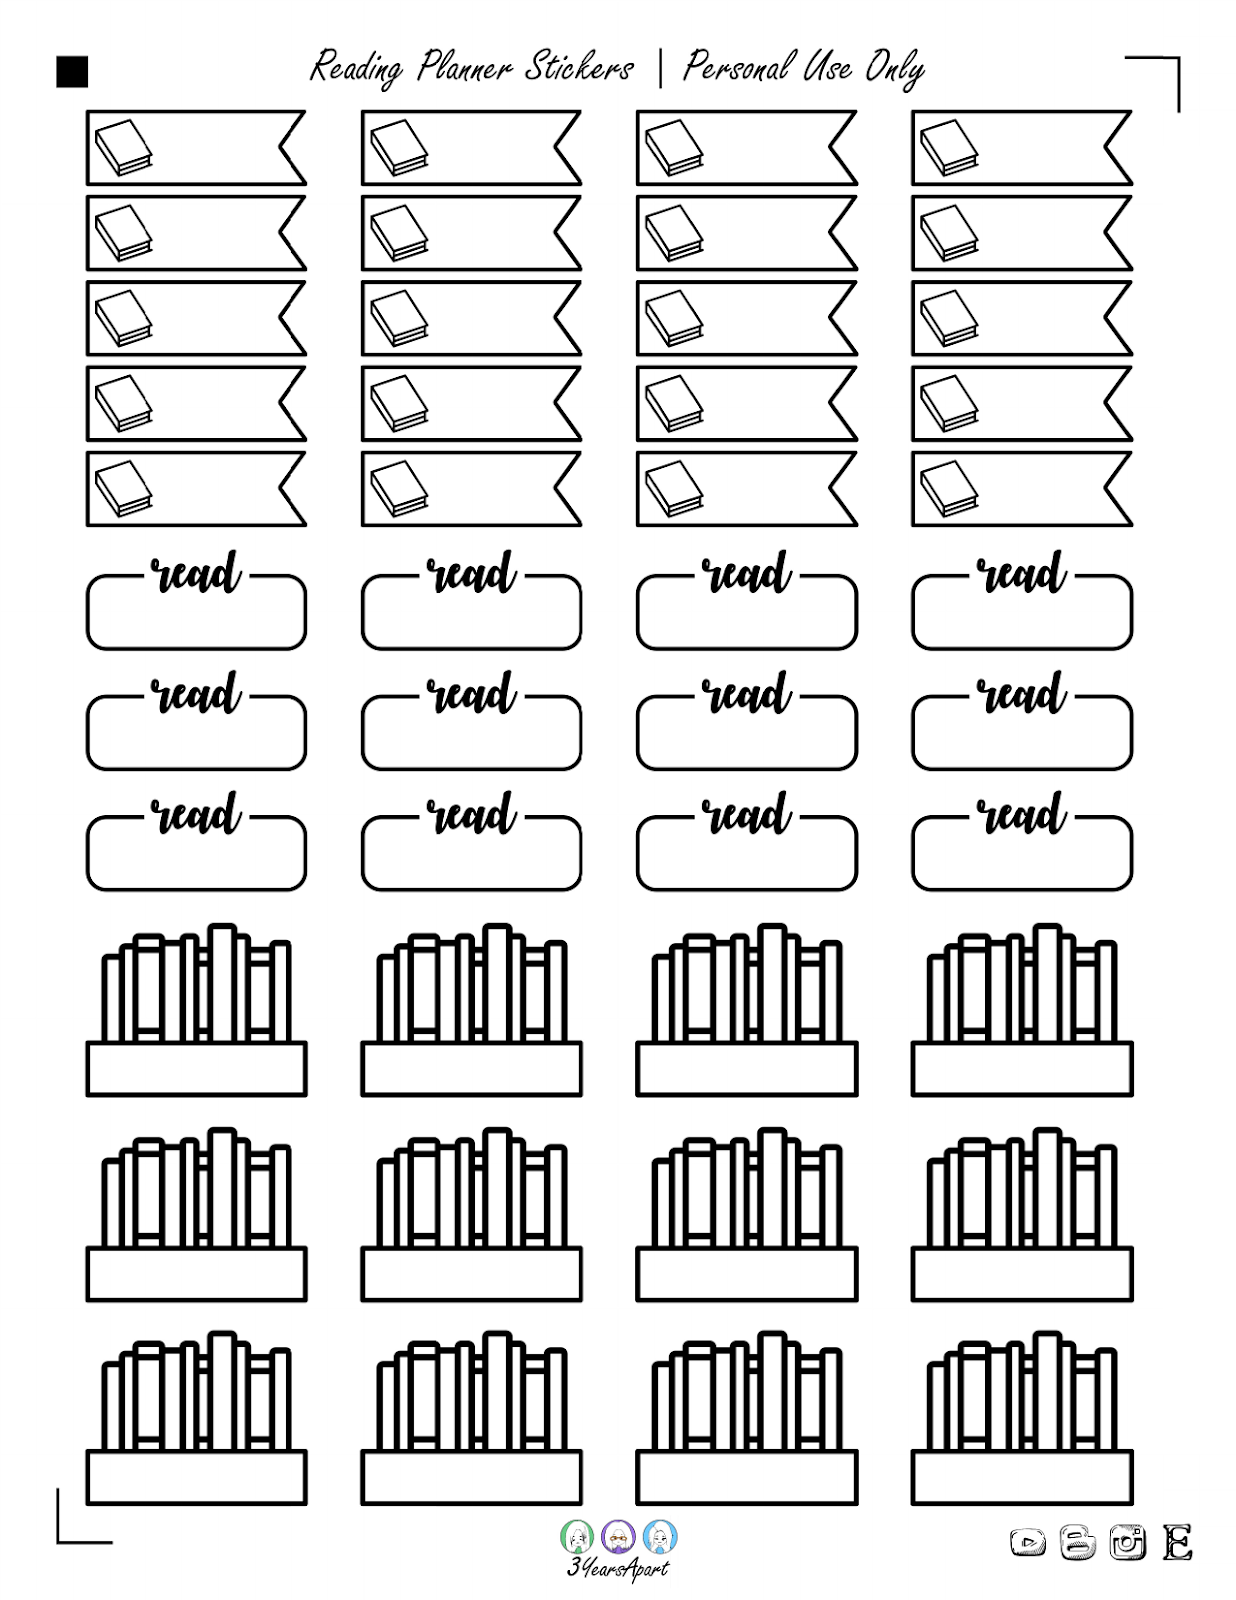 Book Reading Stickers Free Printable Planner And Bullet Journal Stickers 3 Years Apart